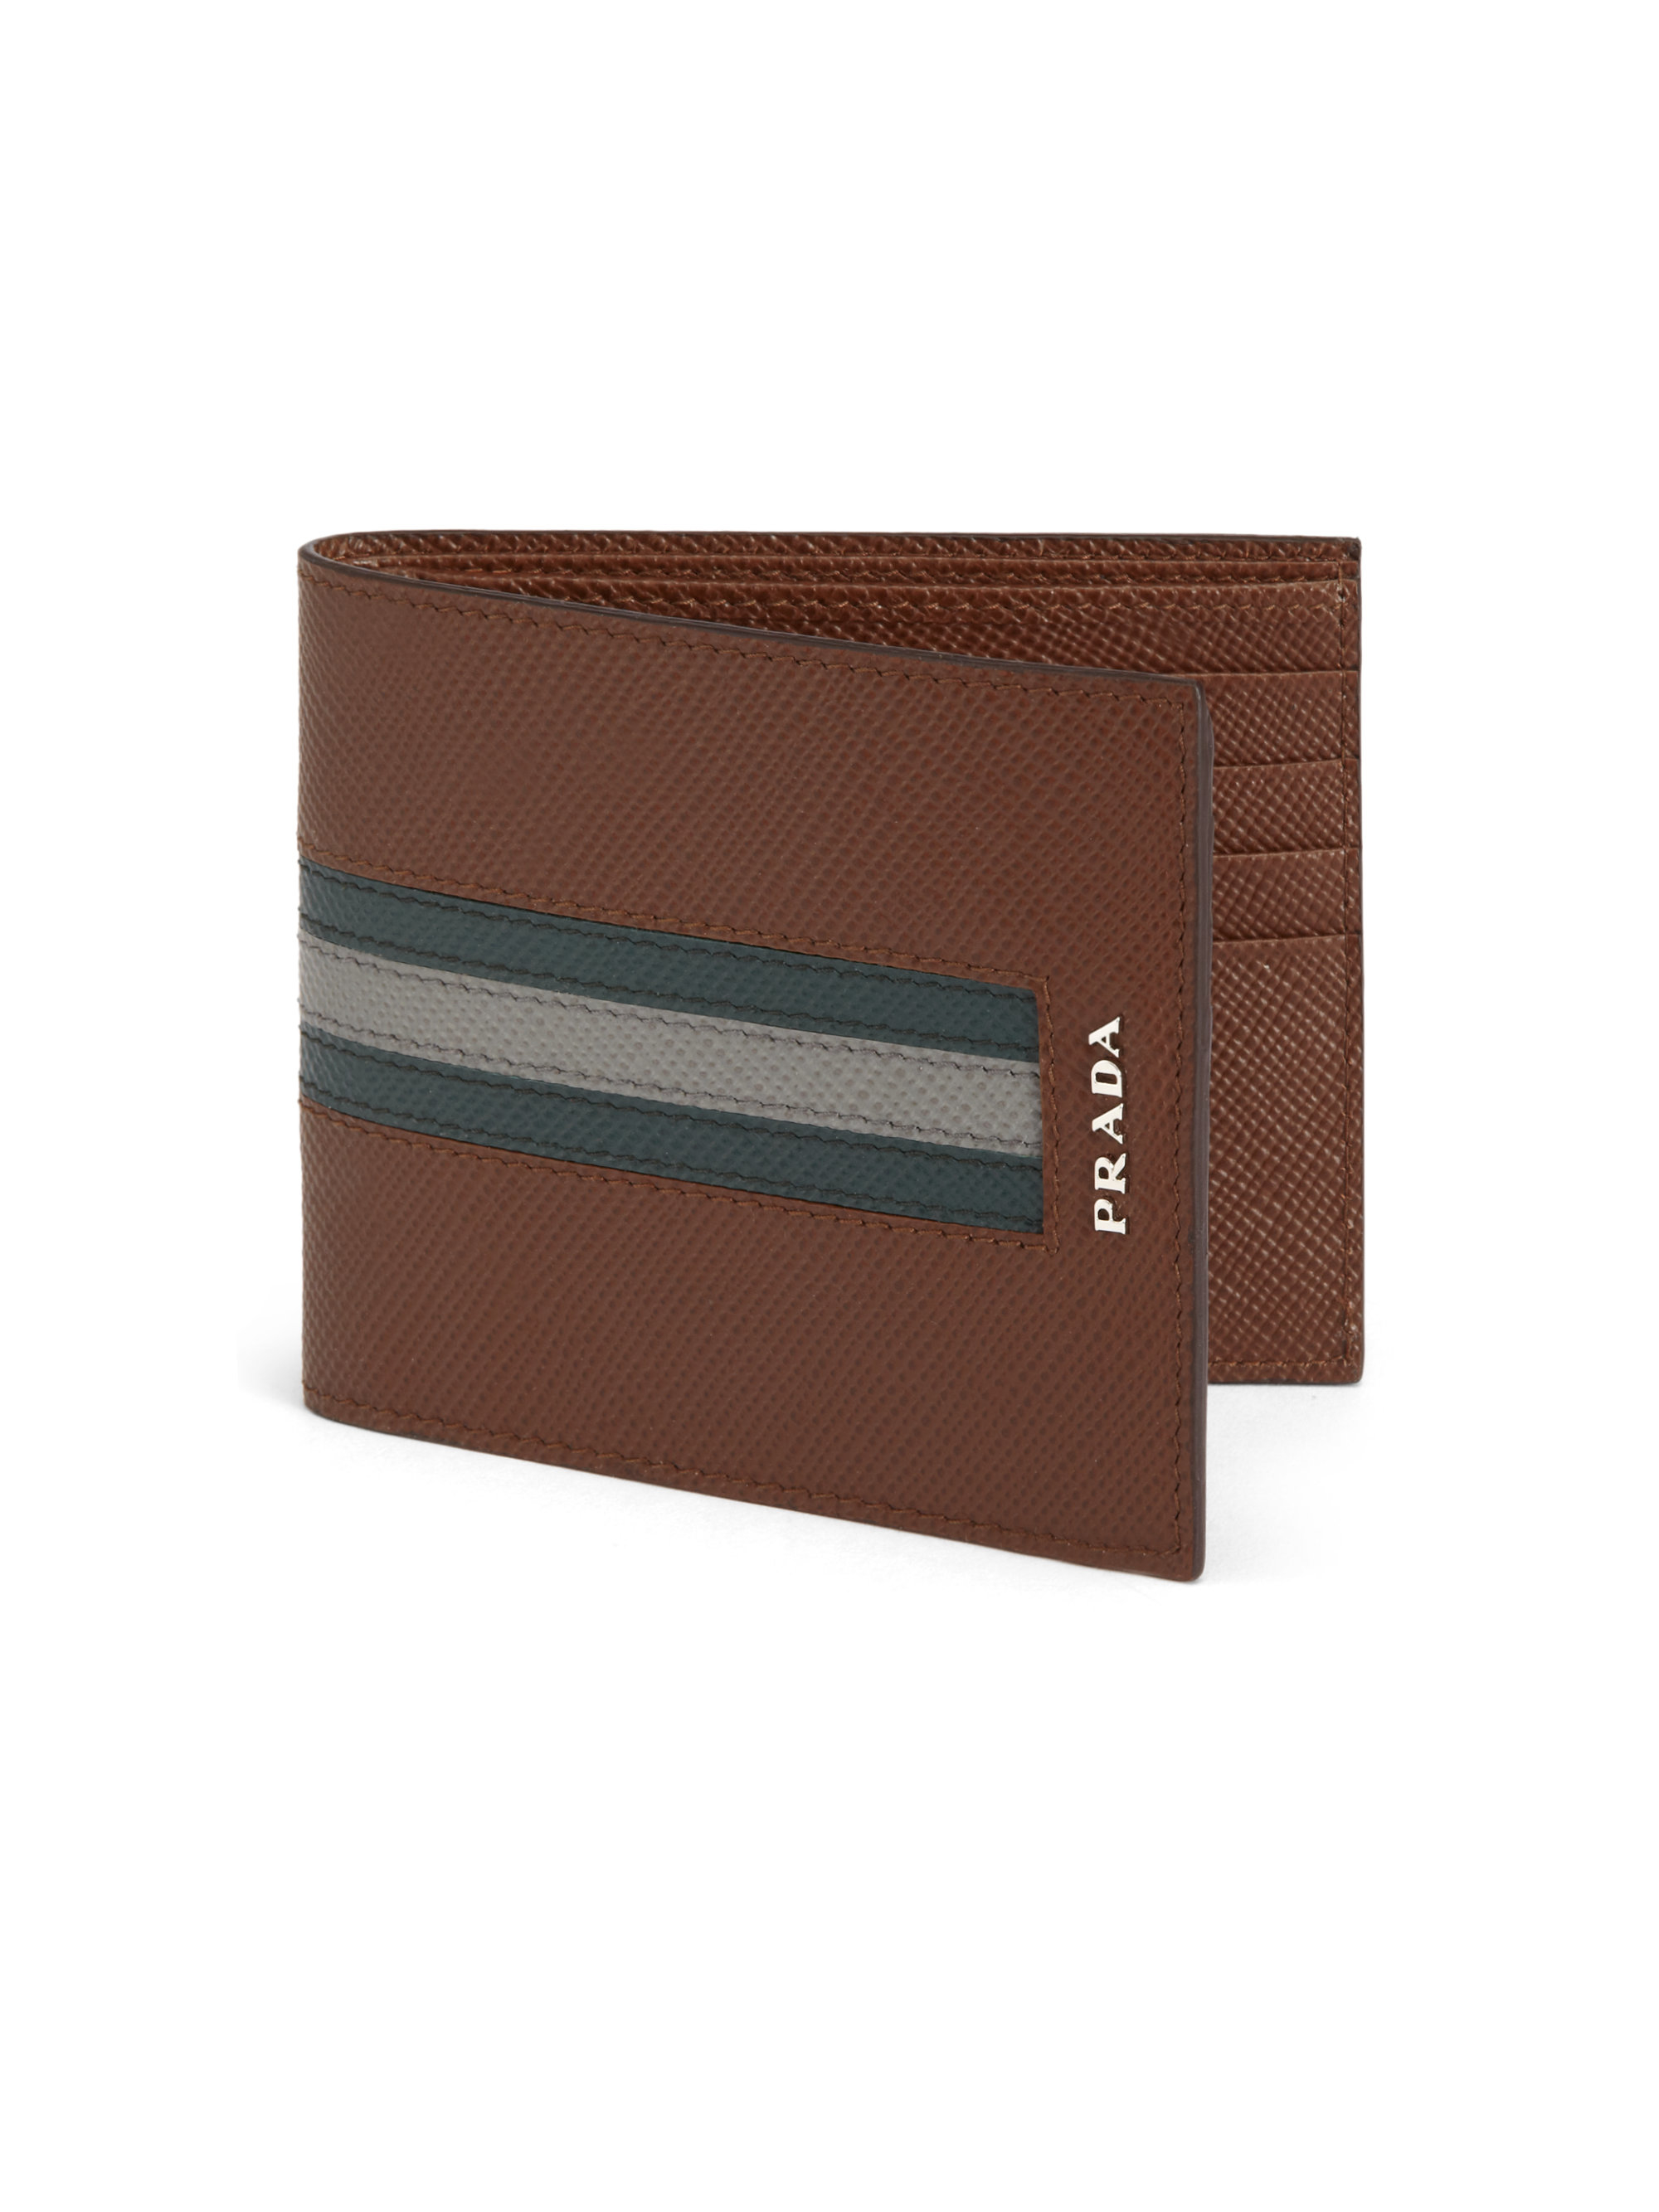 29ecd597dfaf49 ... top quality lyst prada saffiano cuir striped bifold wallet in brown for  men 4934a 70410